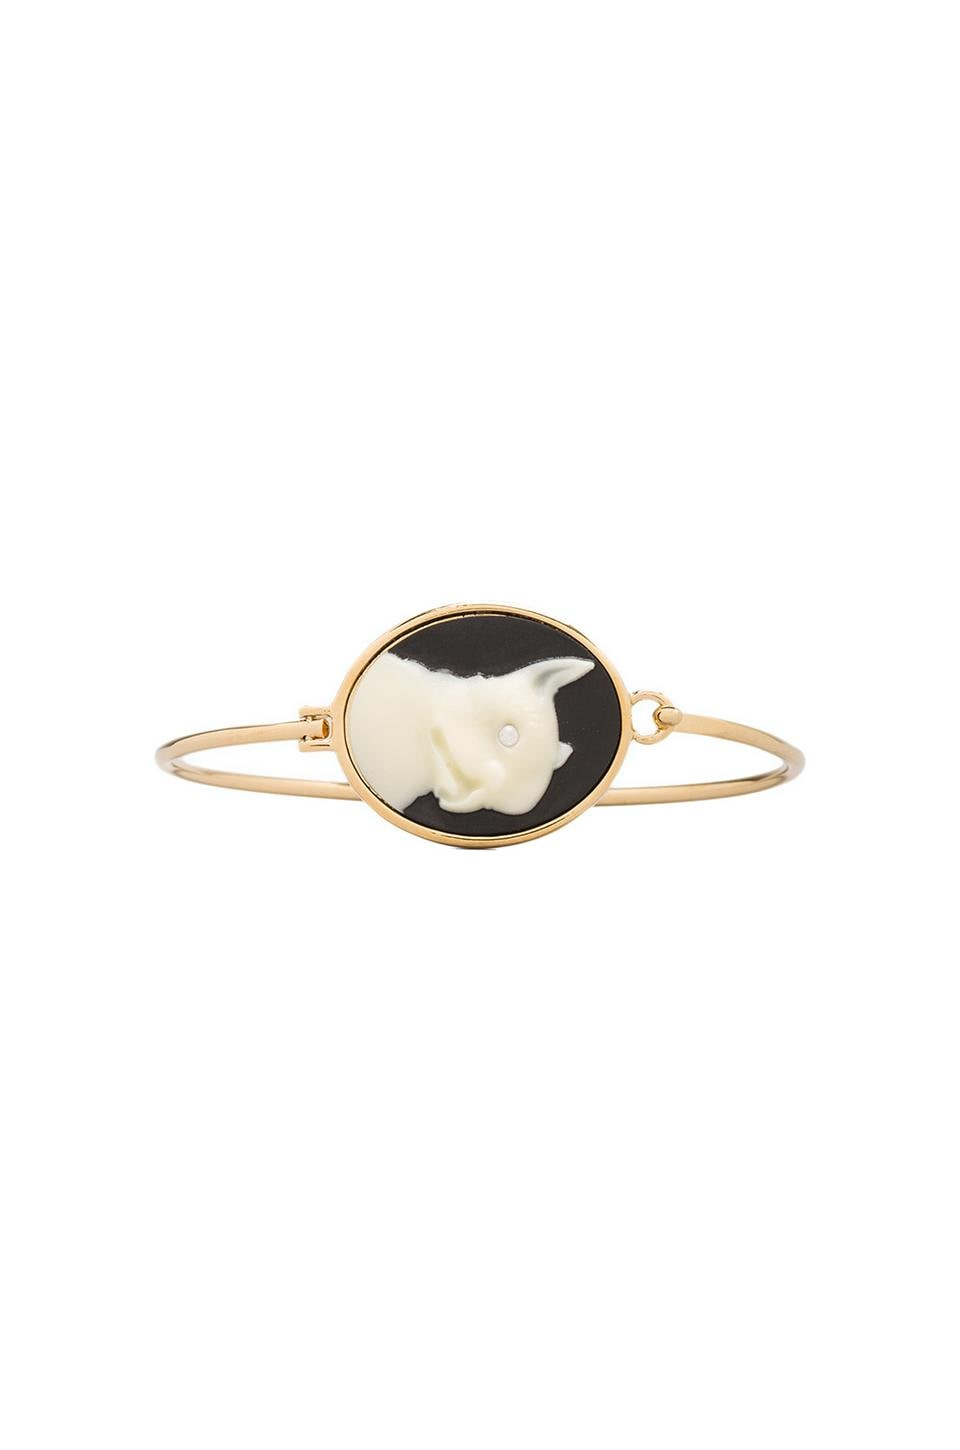 Marc by Marc Jacobs Olive Cameo Hinge Cuff in Black/Cream (Oro)